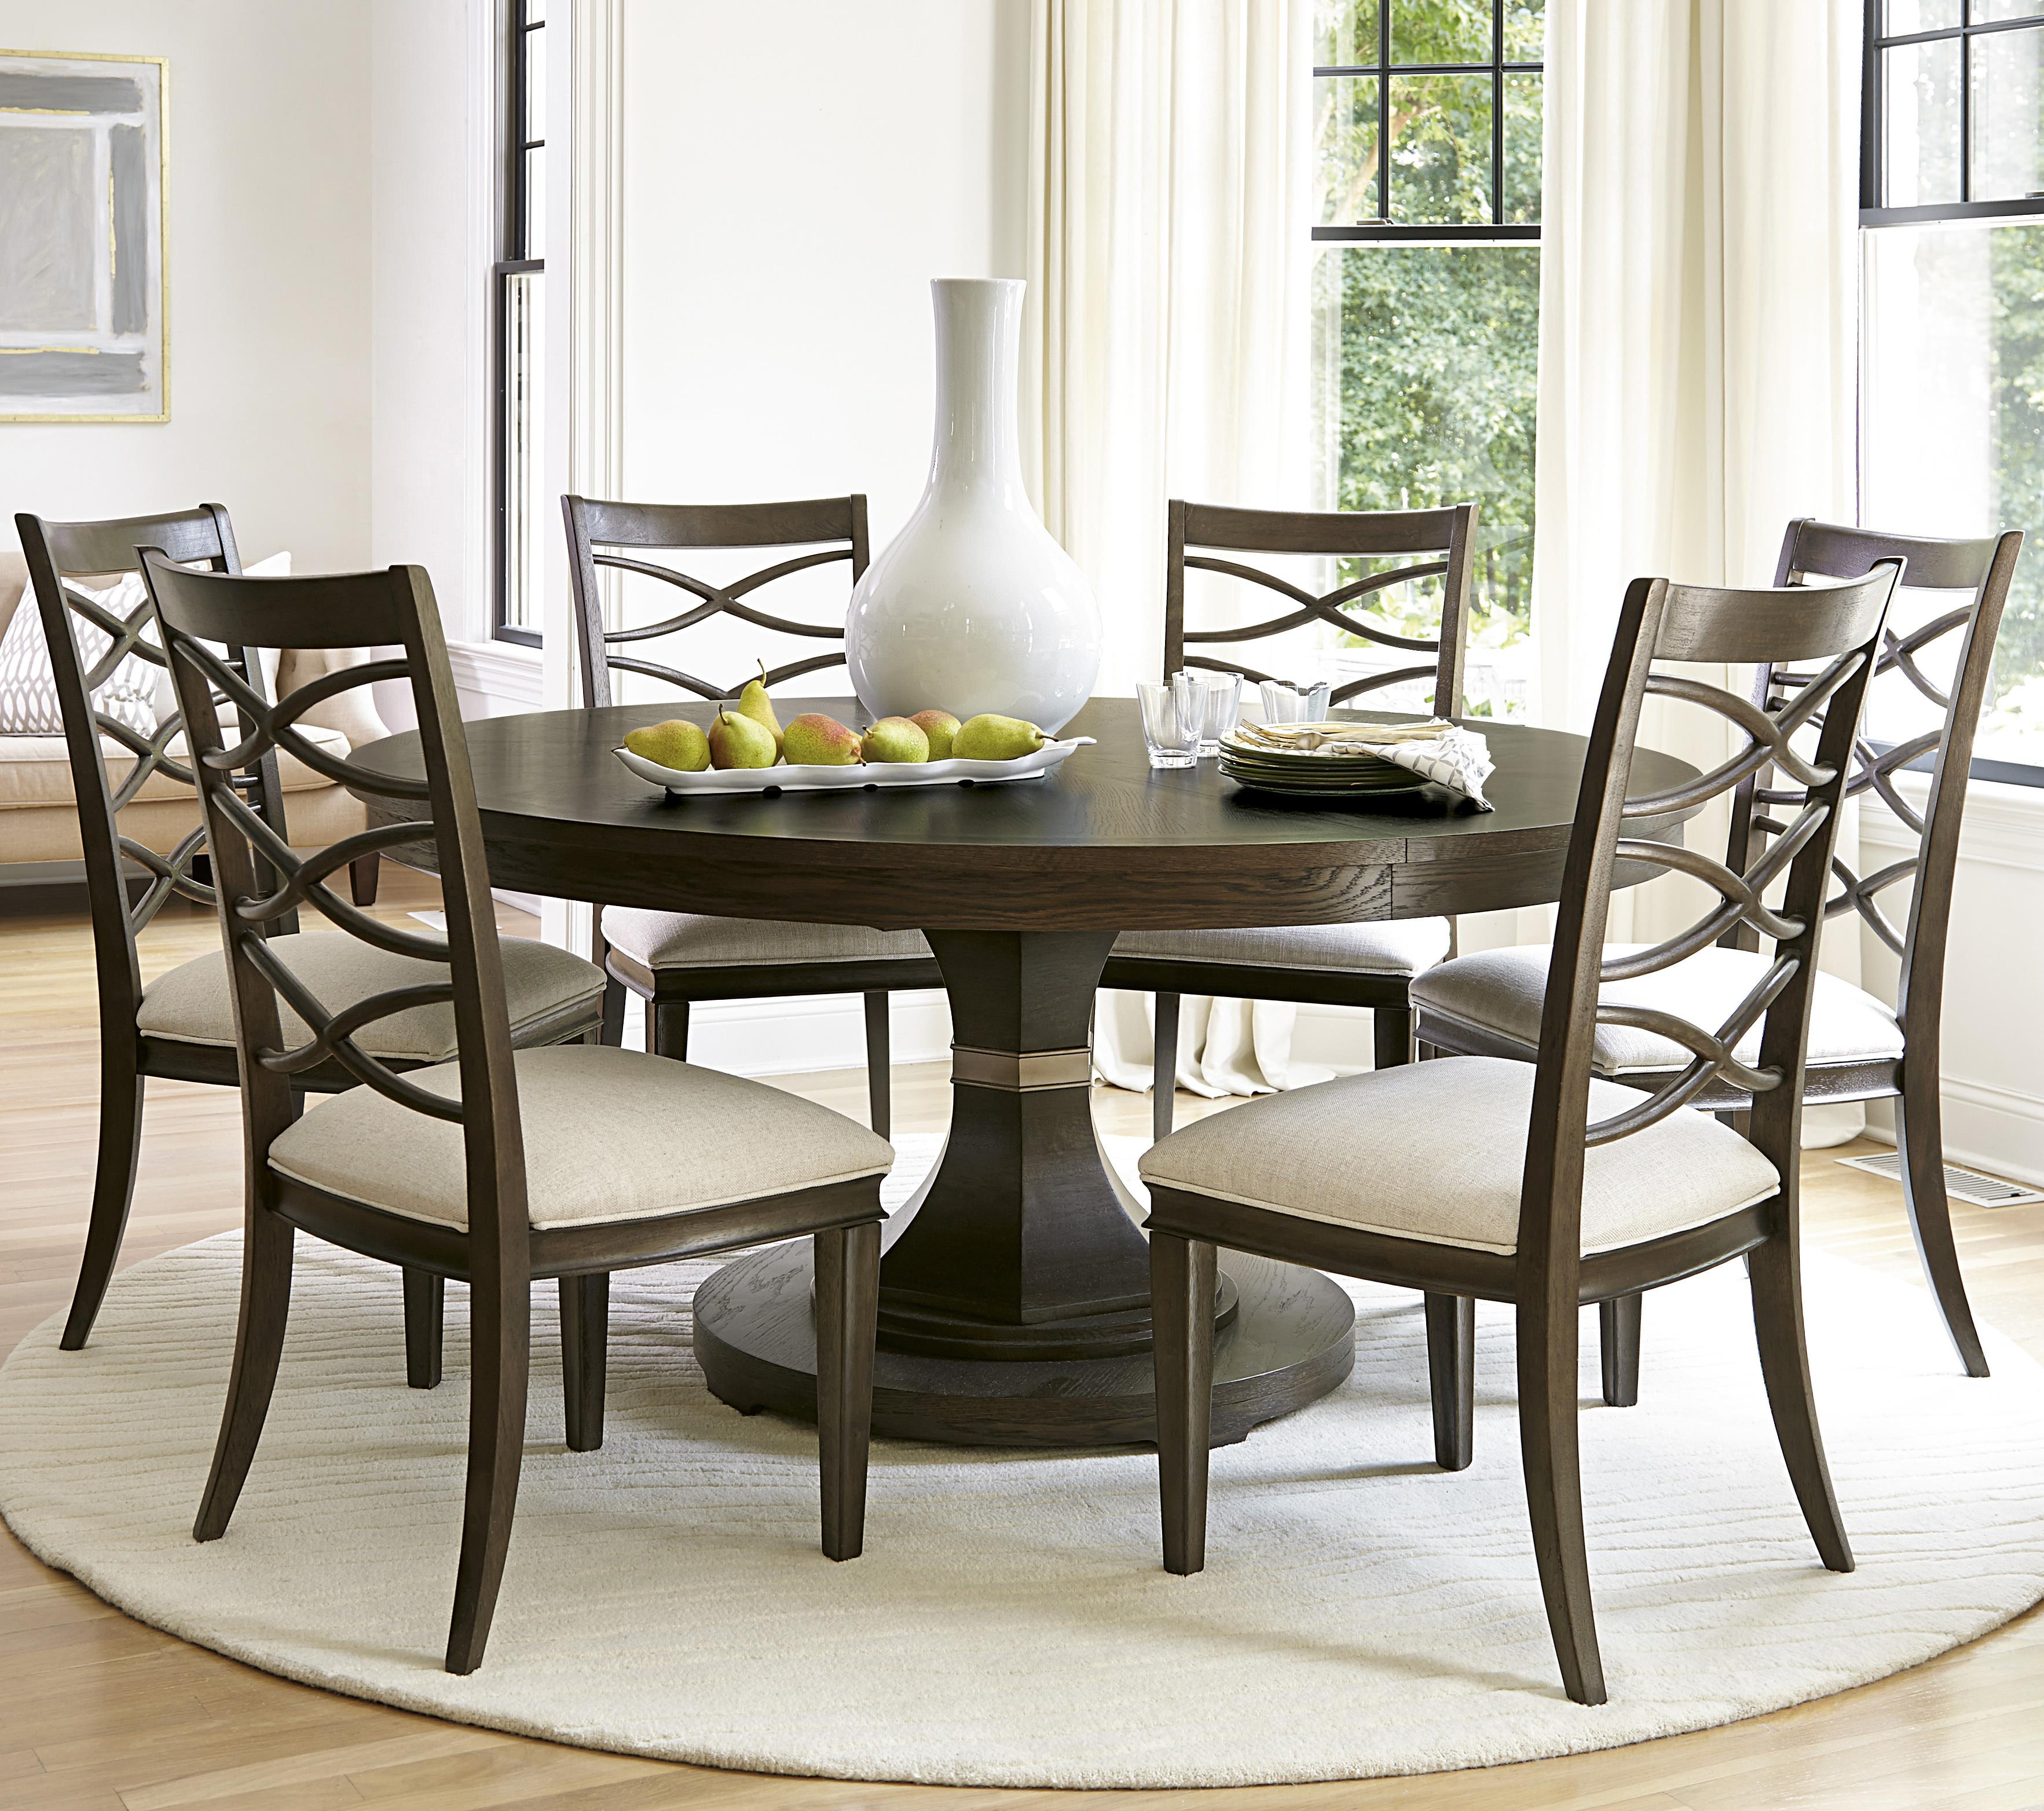 Universal California - Hollywood Hills 7 Piece Dining Set - Item Number: 475657+6x634-RTA